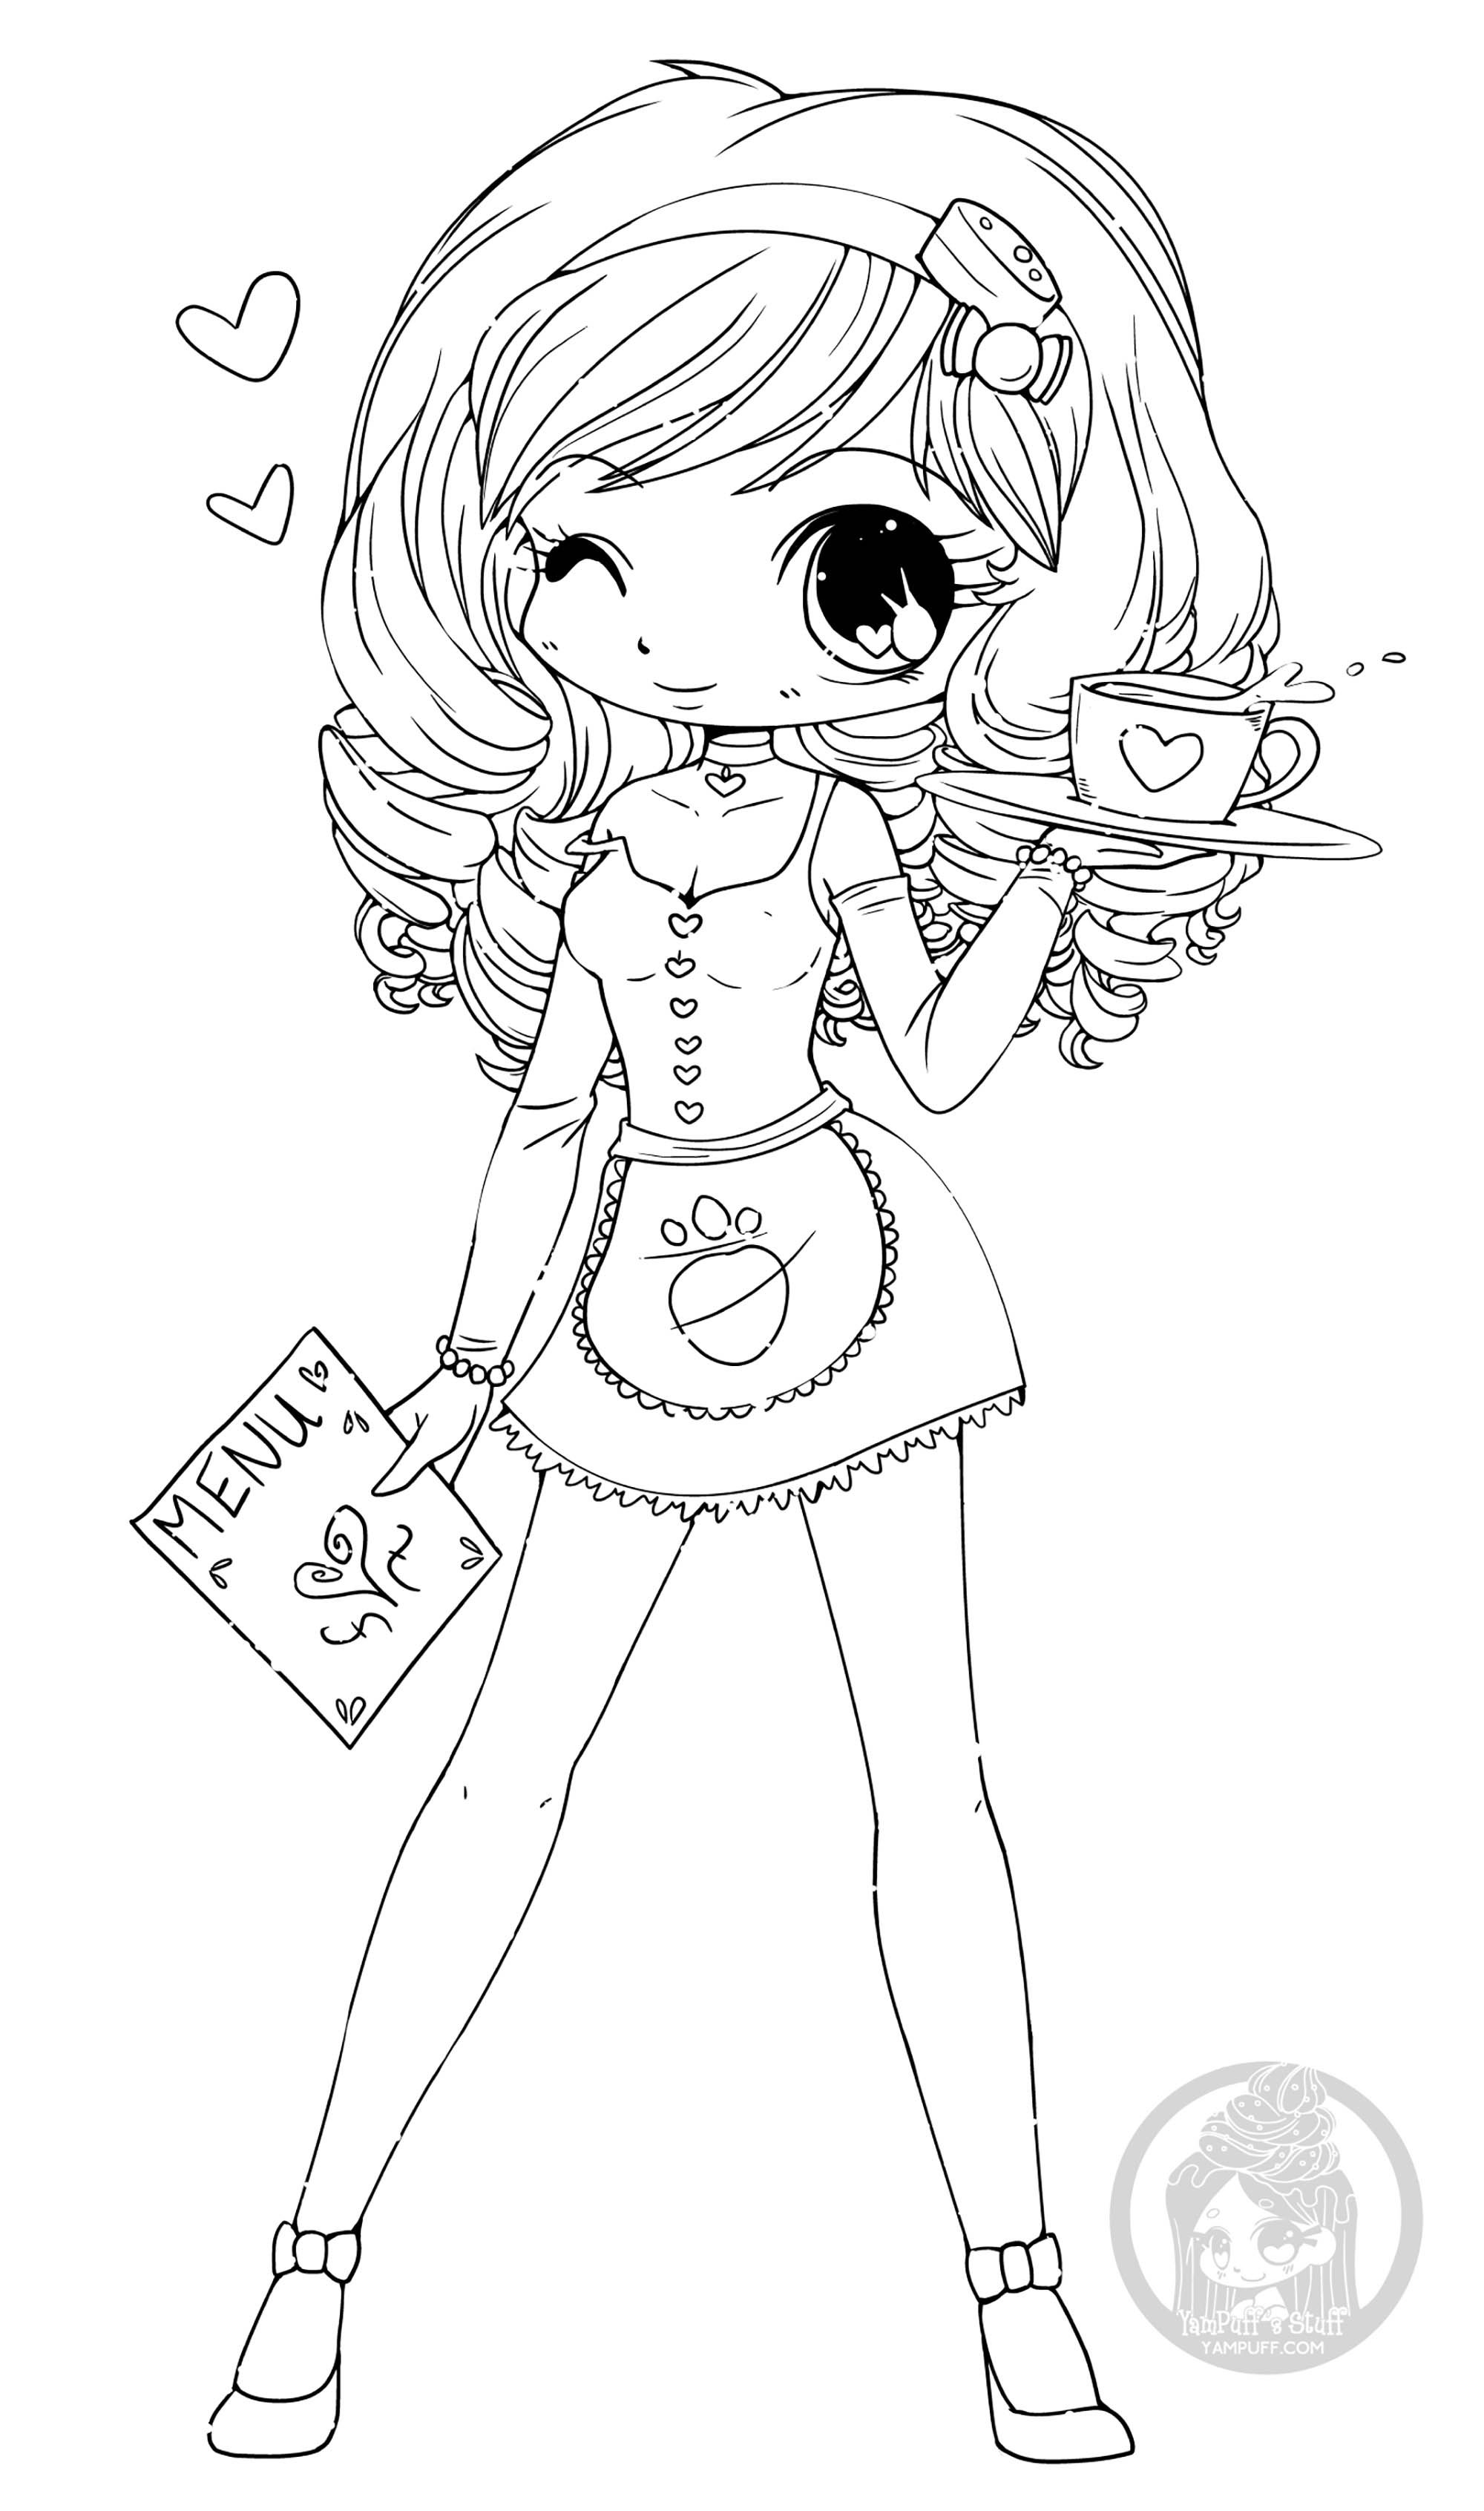 This Cute Girl Winks You To Make You Want To Color Her From The Gallery Back To Childhood Chibi Coloring Pages Cute Coloring Pages Princess Coloring Pages